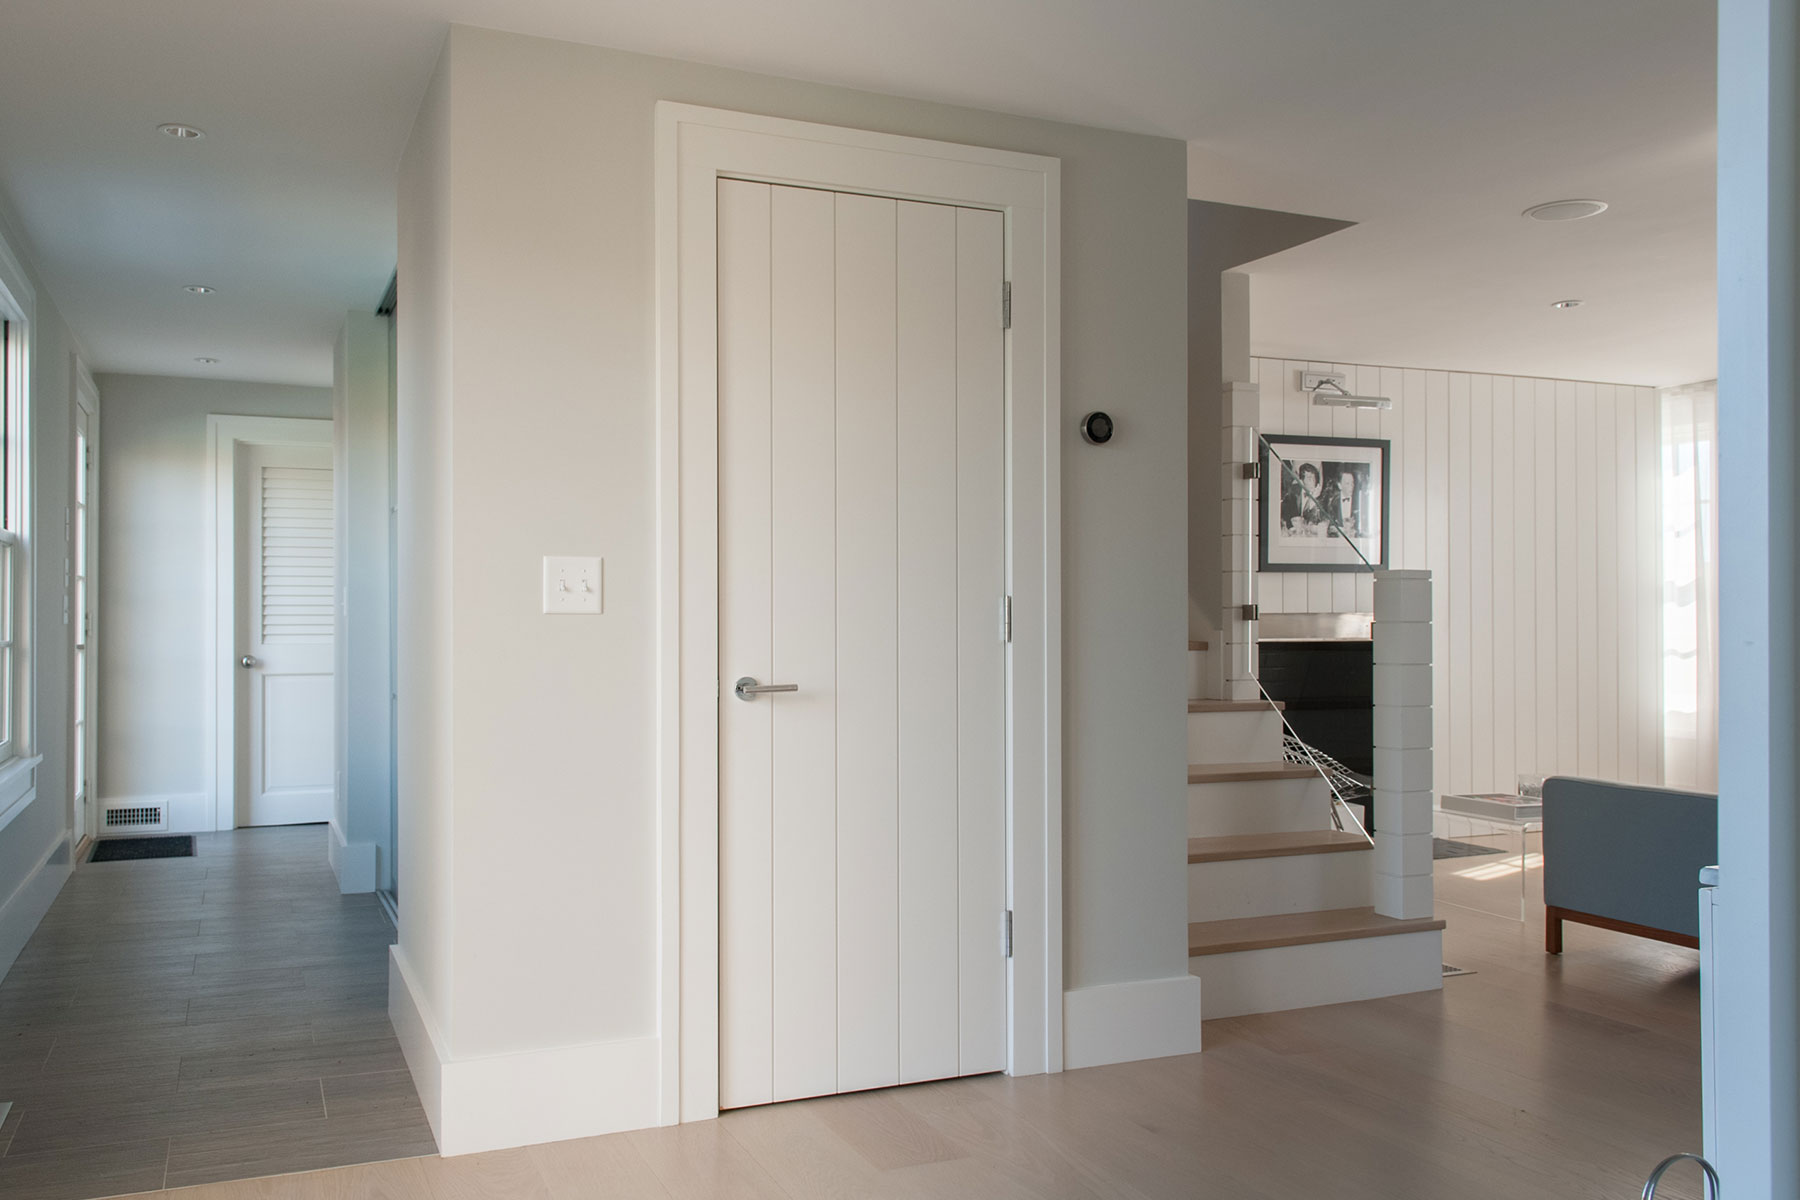 VG1000 interior door in MDF with wide planks and wide v-groove profile